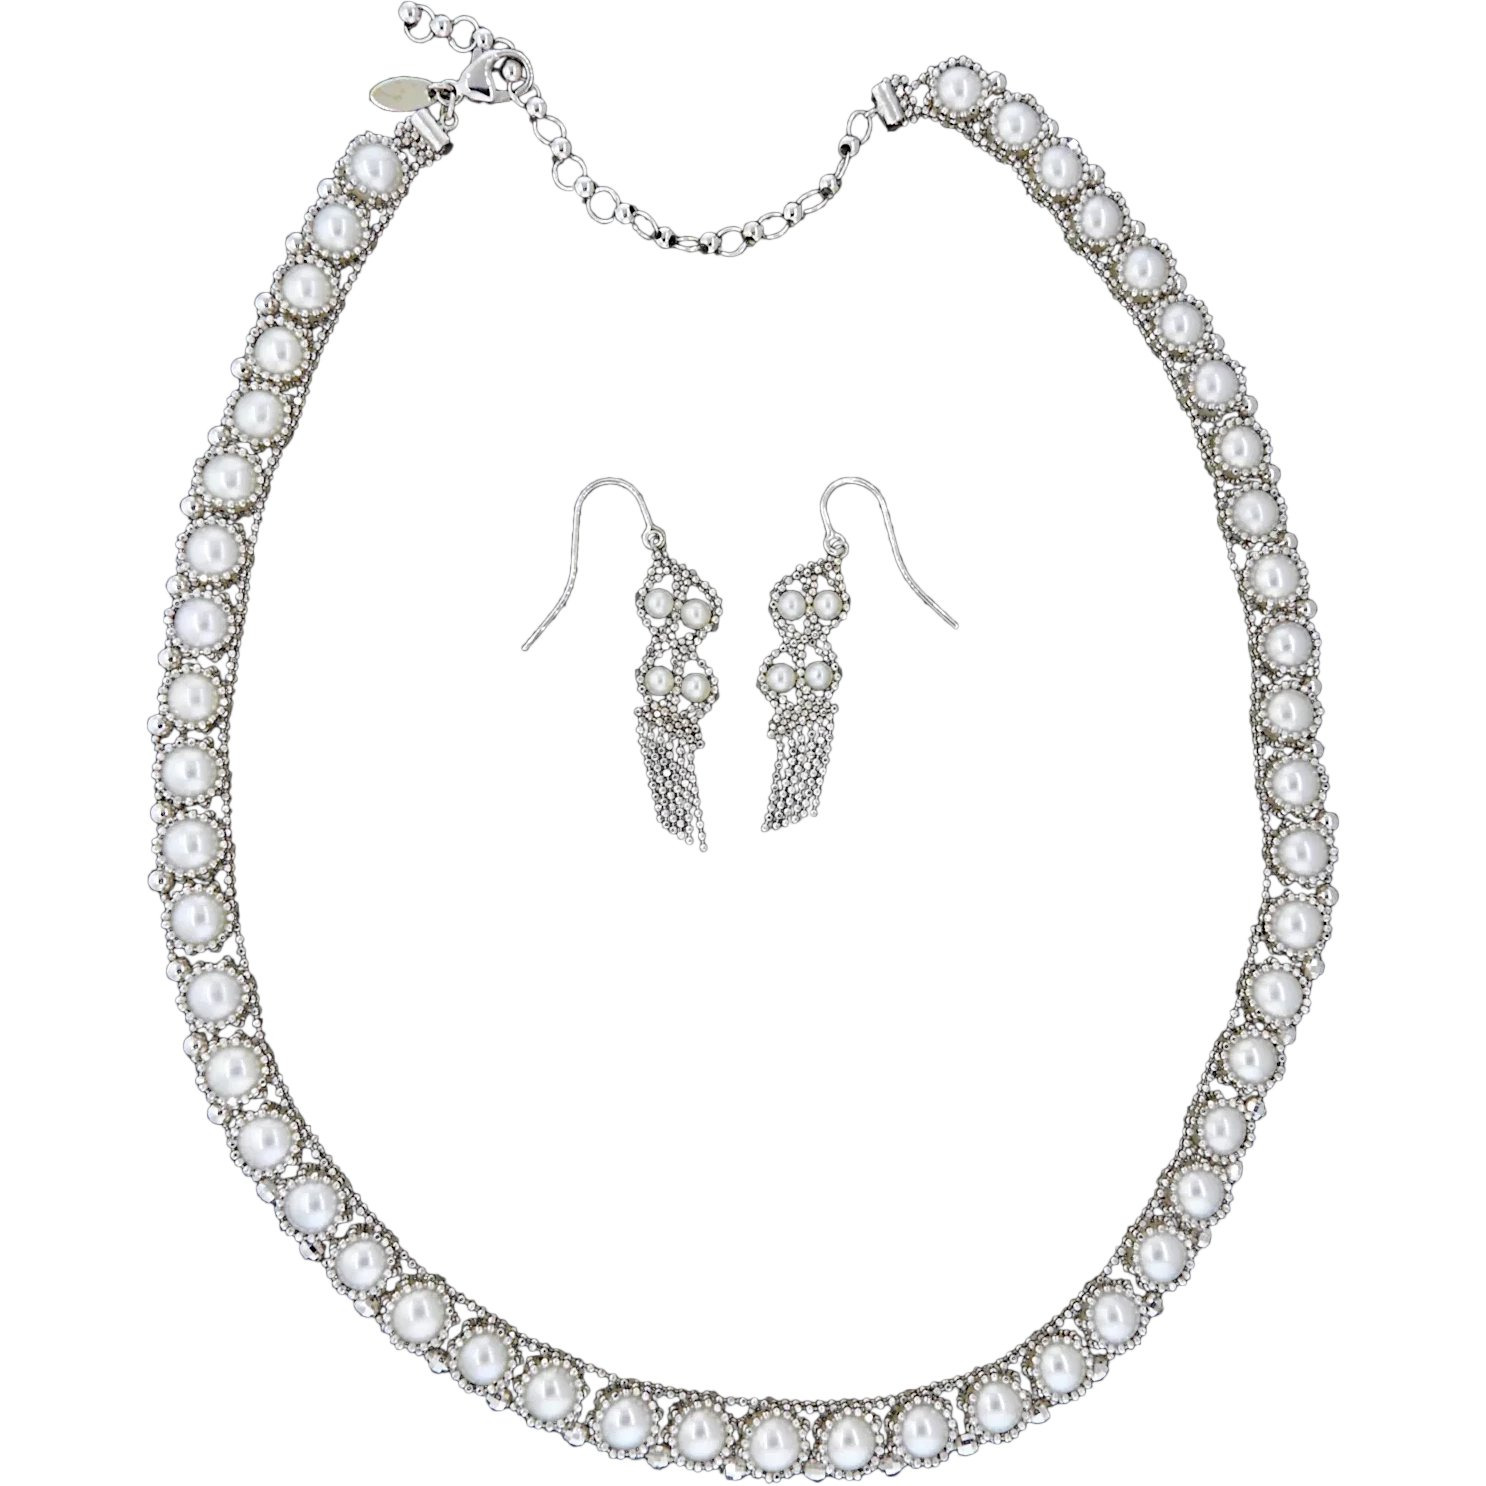 e7befaeef Iridesse, by Tiffany & Co., Cultured Pearls in 18K White Gold, : Circa  Vintage Jewelry | Ruby Lane